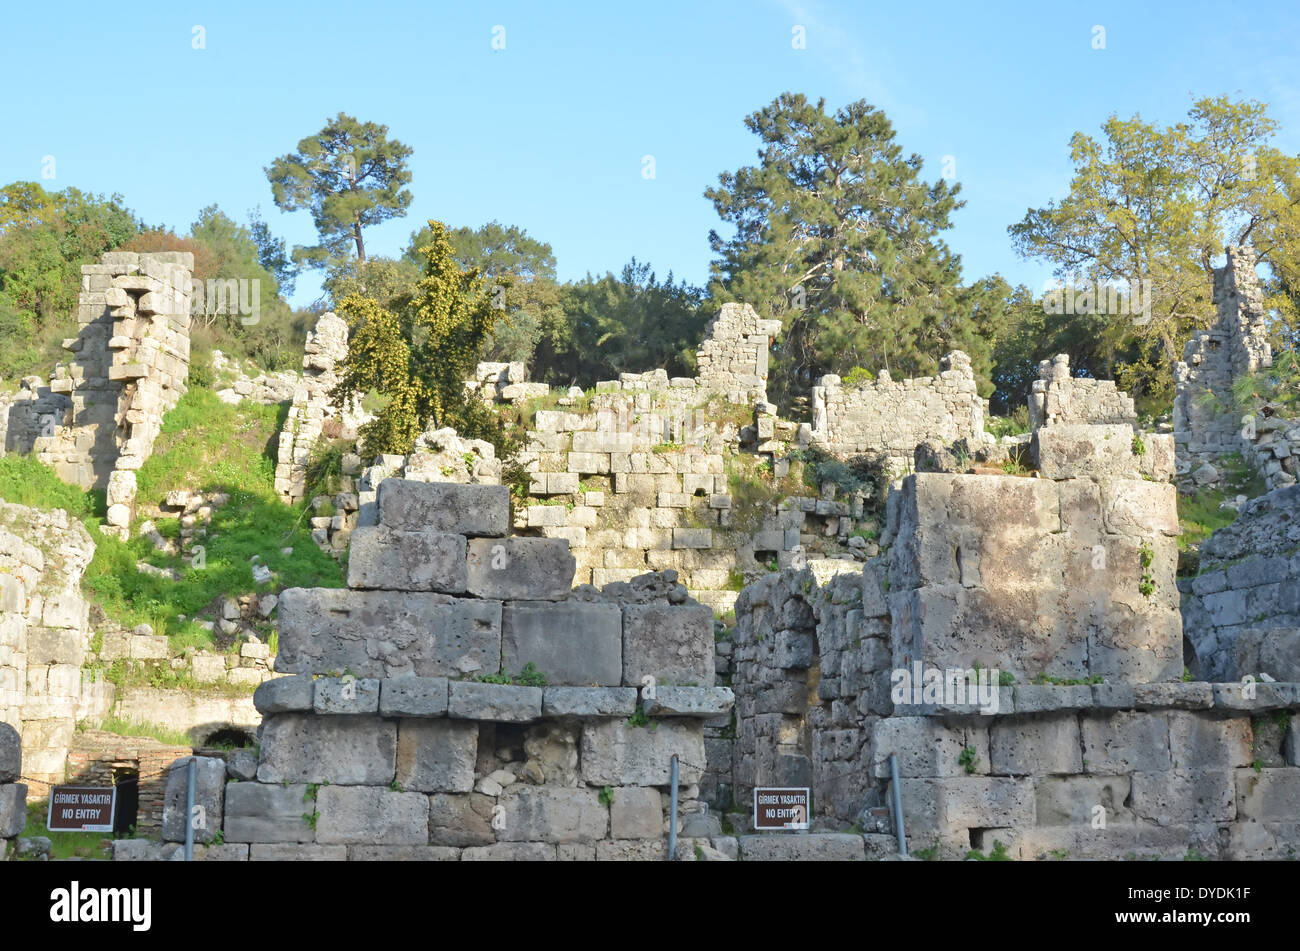 ruins town architecture walls Greek ancient Greek history Rhodes turkey Anatolia centre Phaselis Lycia Lycian league Alexand - Stock Image